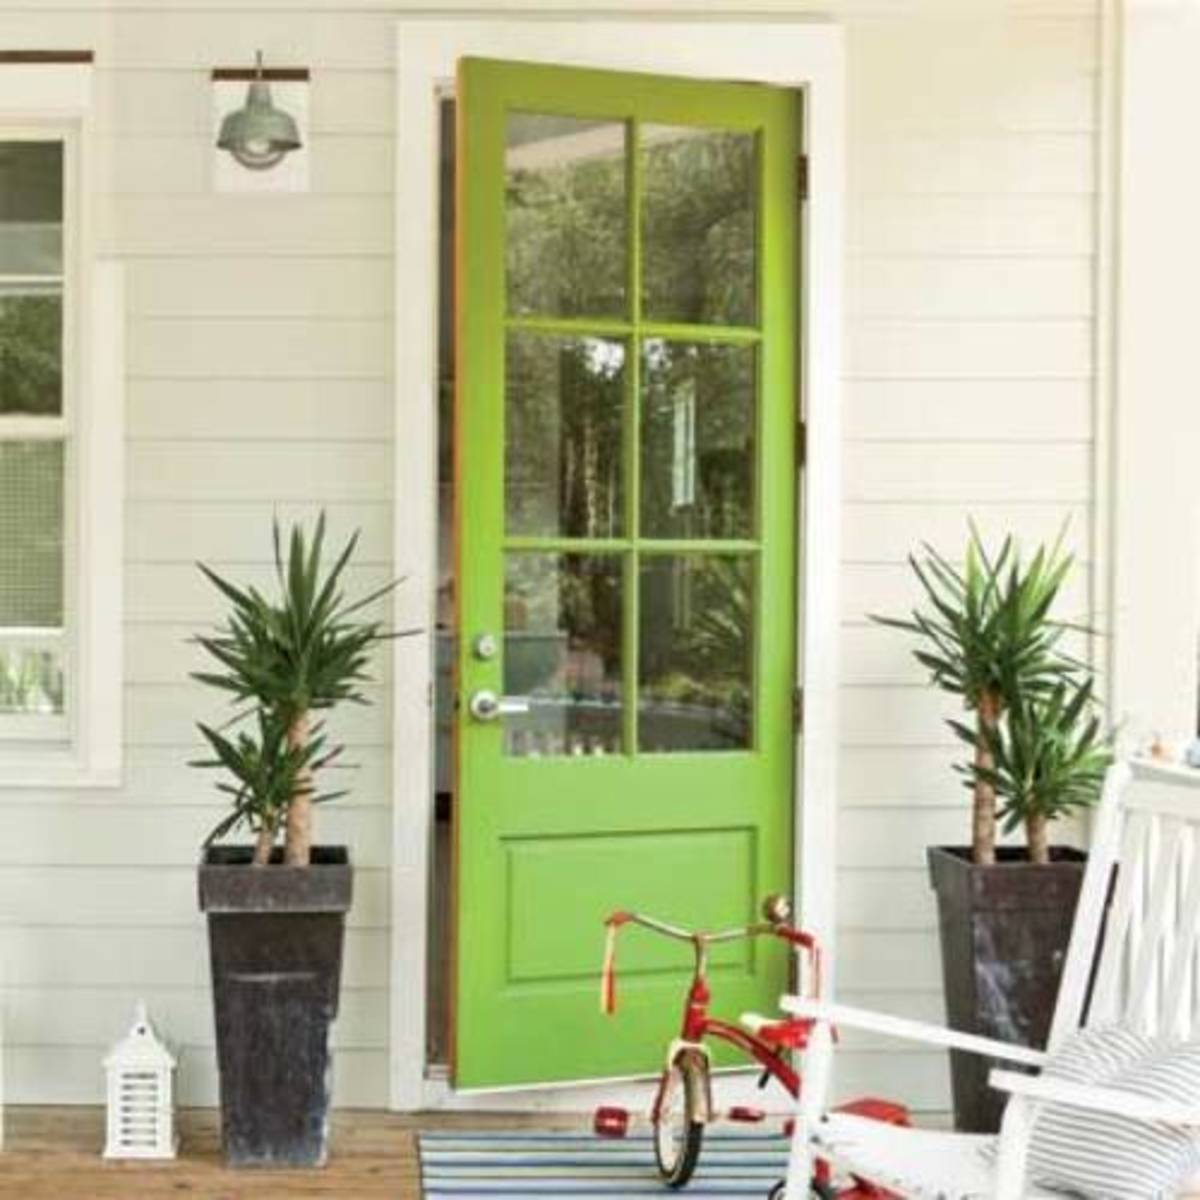 When it comes to making a color statement, few hues top green, especially this lime green.